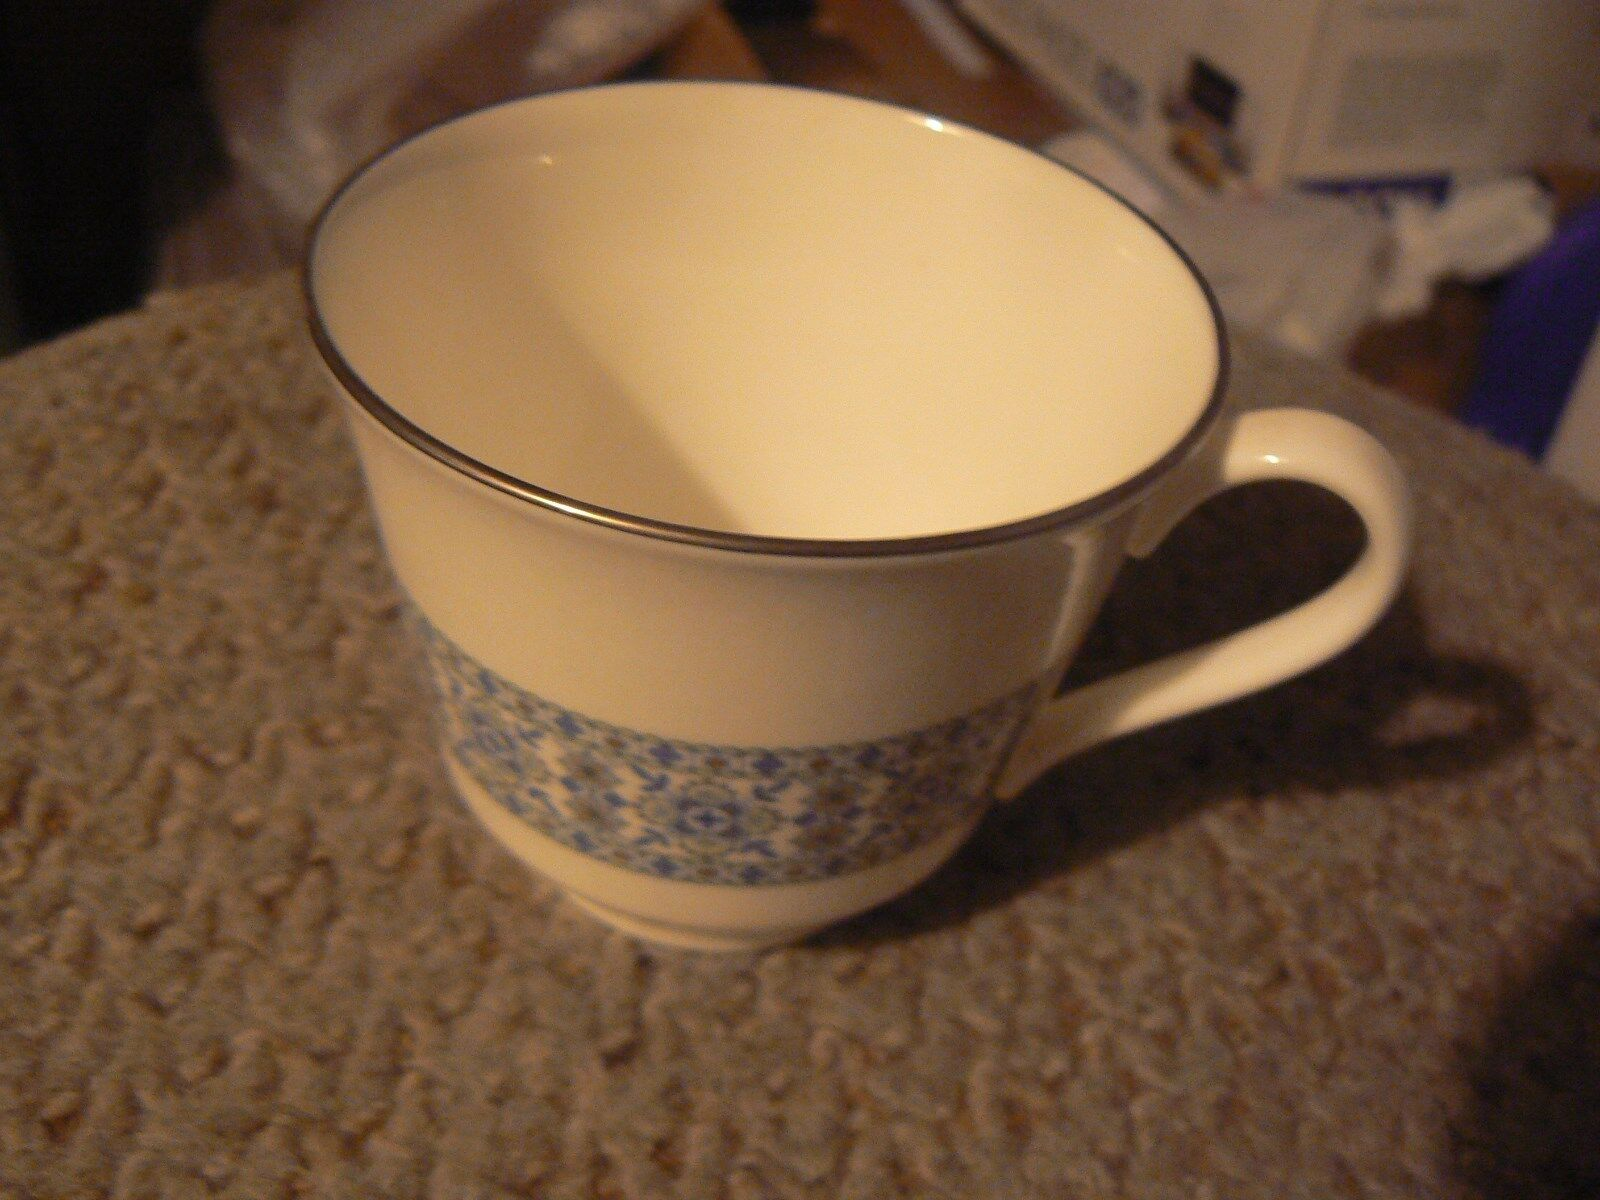 Royal Doulton Counterpoint cup 7 available